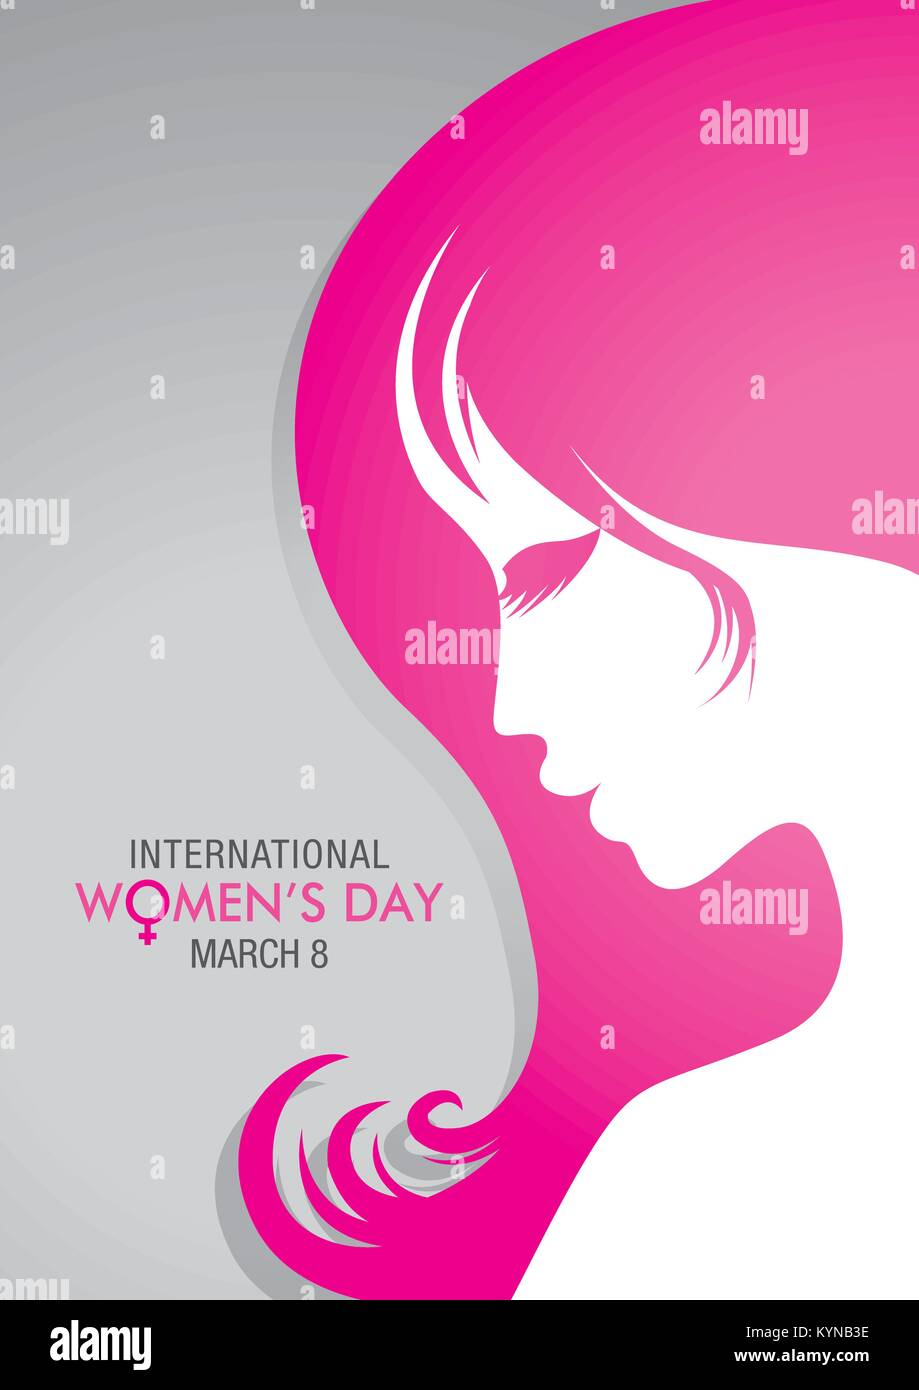 Design about international womens day with a drawing of a woman face with pink hair on gray background vector image